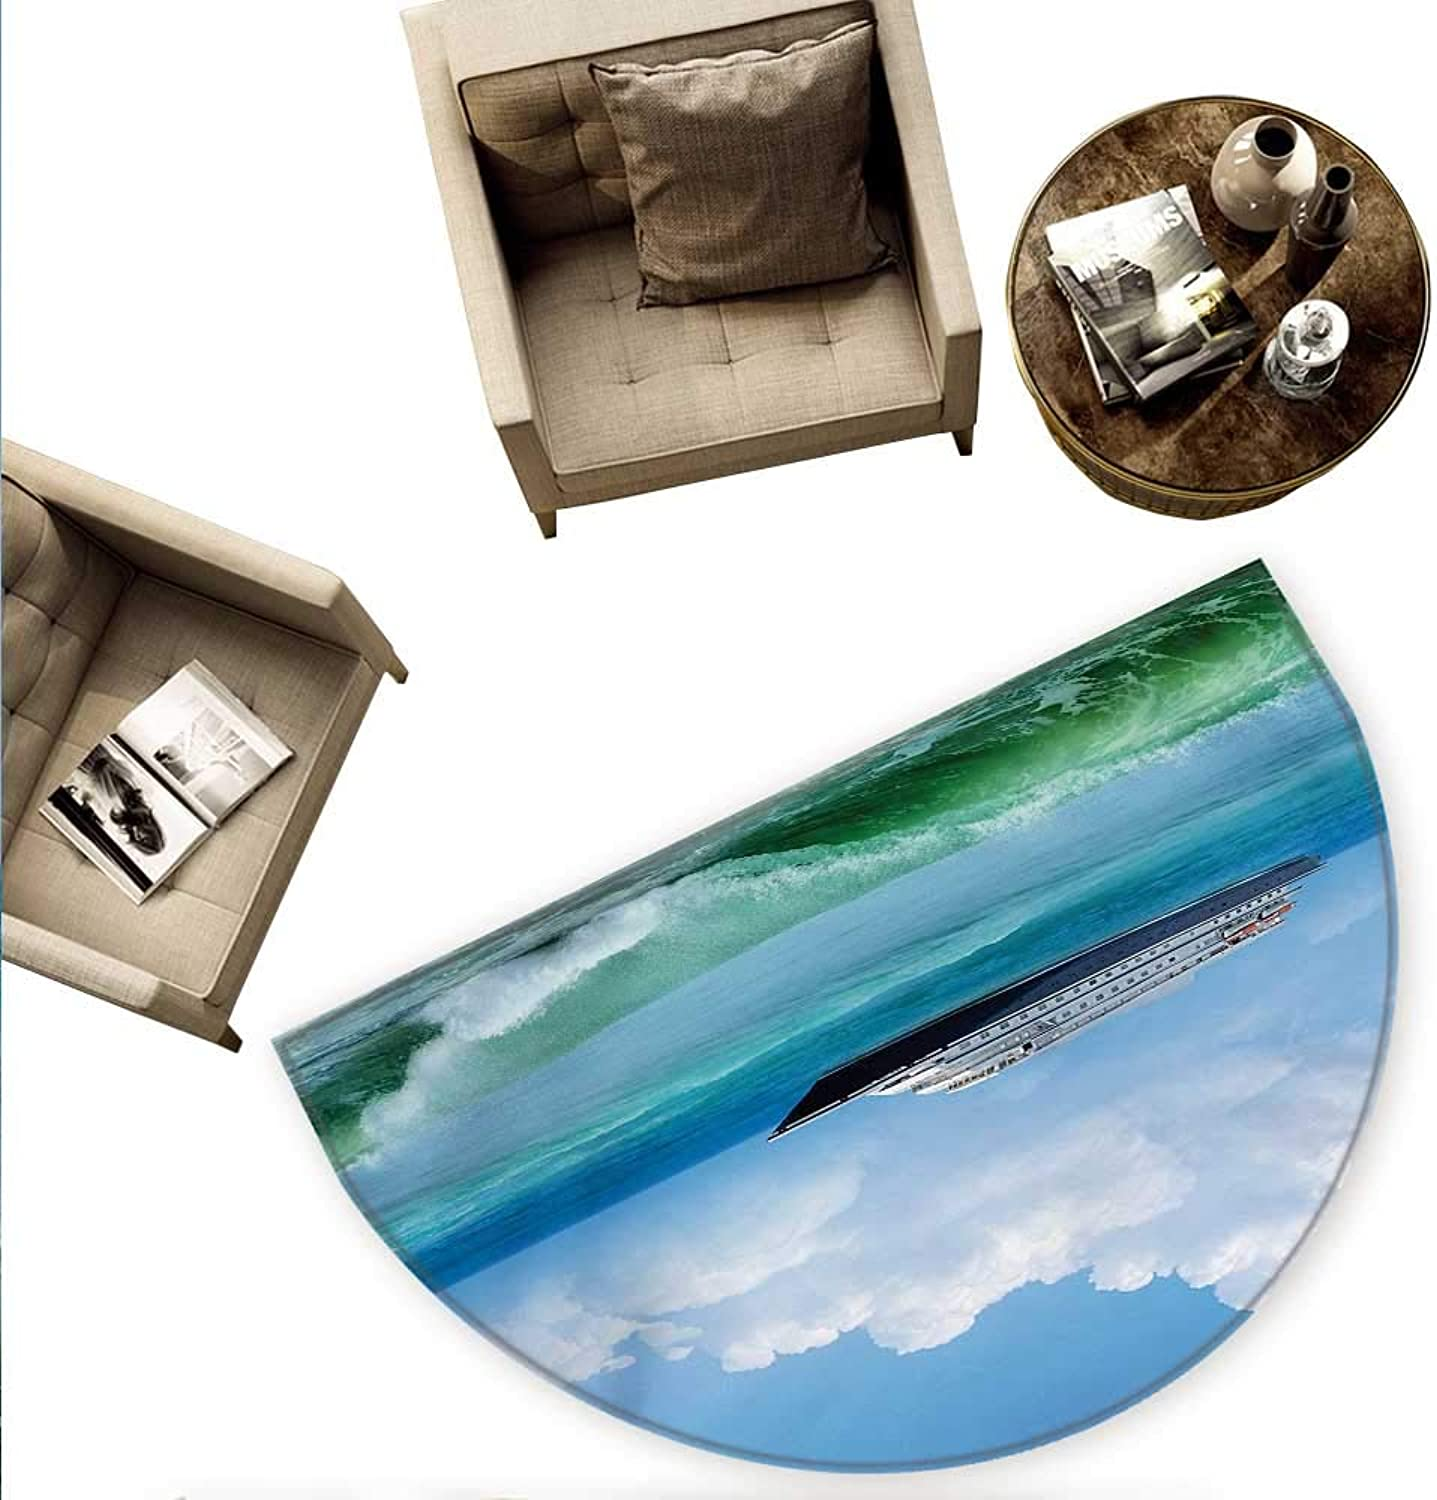 Nautical Semicircle Doormat Traveling Themed View of Ship in The Aquatic World with Fluffy Clouds Day Time Landscape Halfmoon doormats H 55.1  xD 82.6  bluee